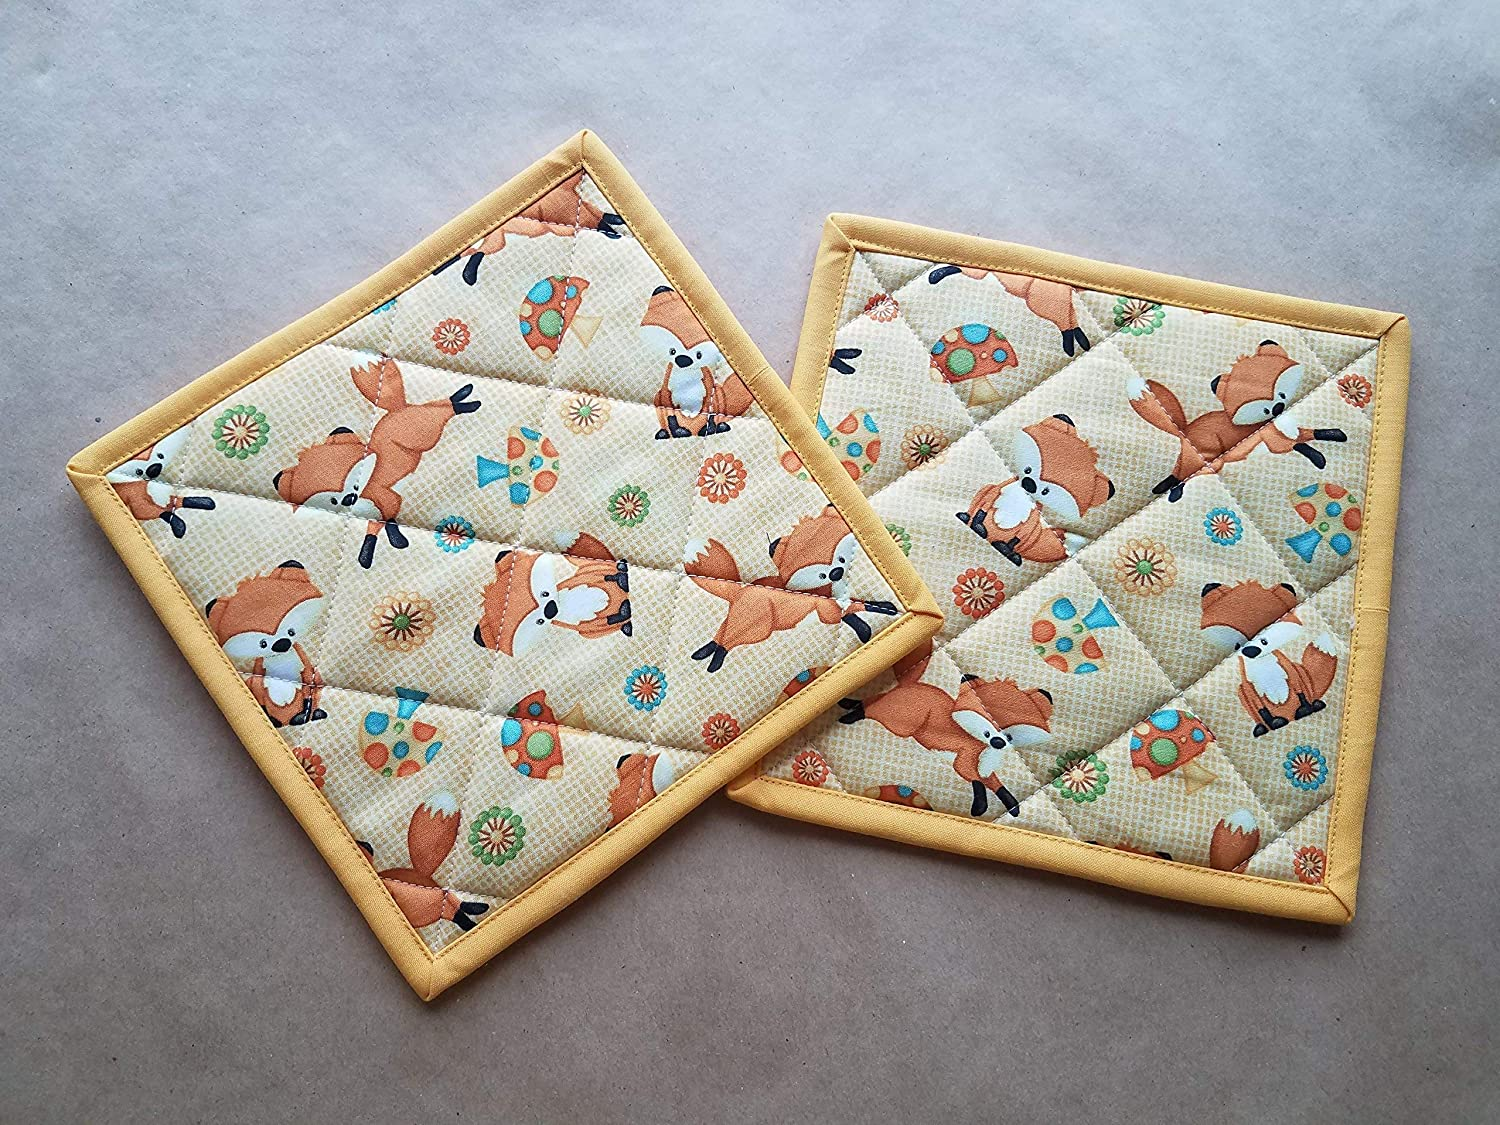 Fox Potholders Set of 2, Vintage Kitchen Linens, Fox Home Decor, Quilted Hot Pads, Insulated trivets, Fox Kitchen Linens, For Fox Sake, Fox, Mushroom, Retro Inspired Kitchen Linens, Gifts Under 20